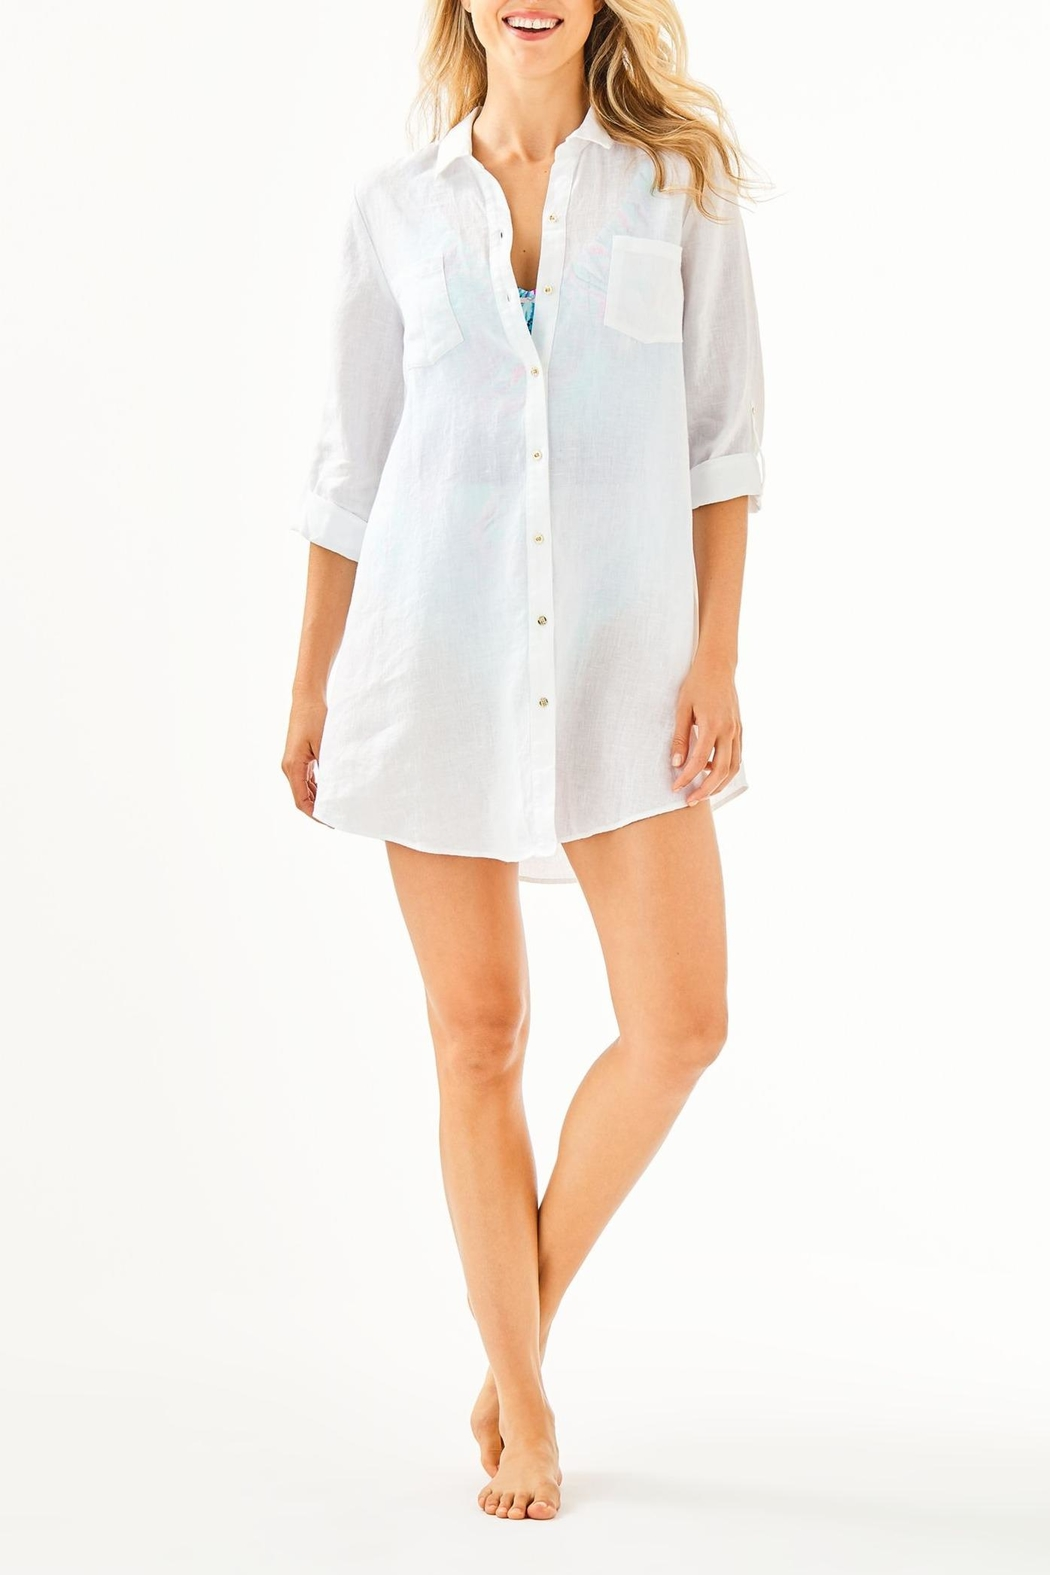 Lilly Pulitzer Natalie Coverup - Side Cropped Image